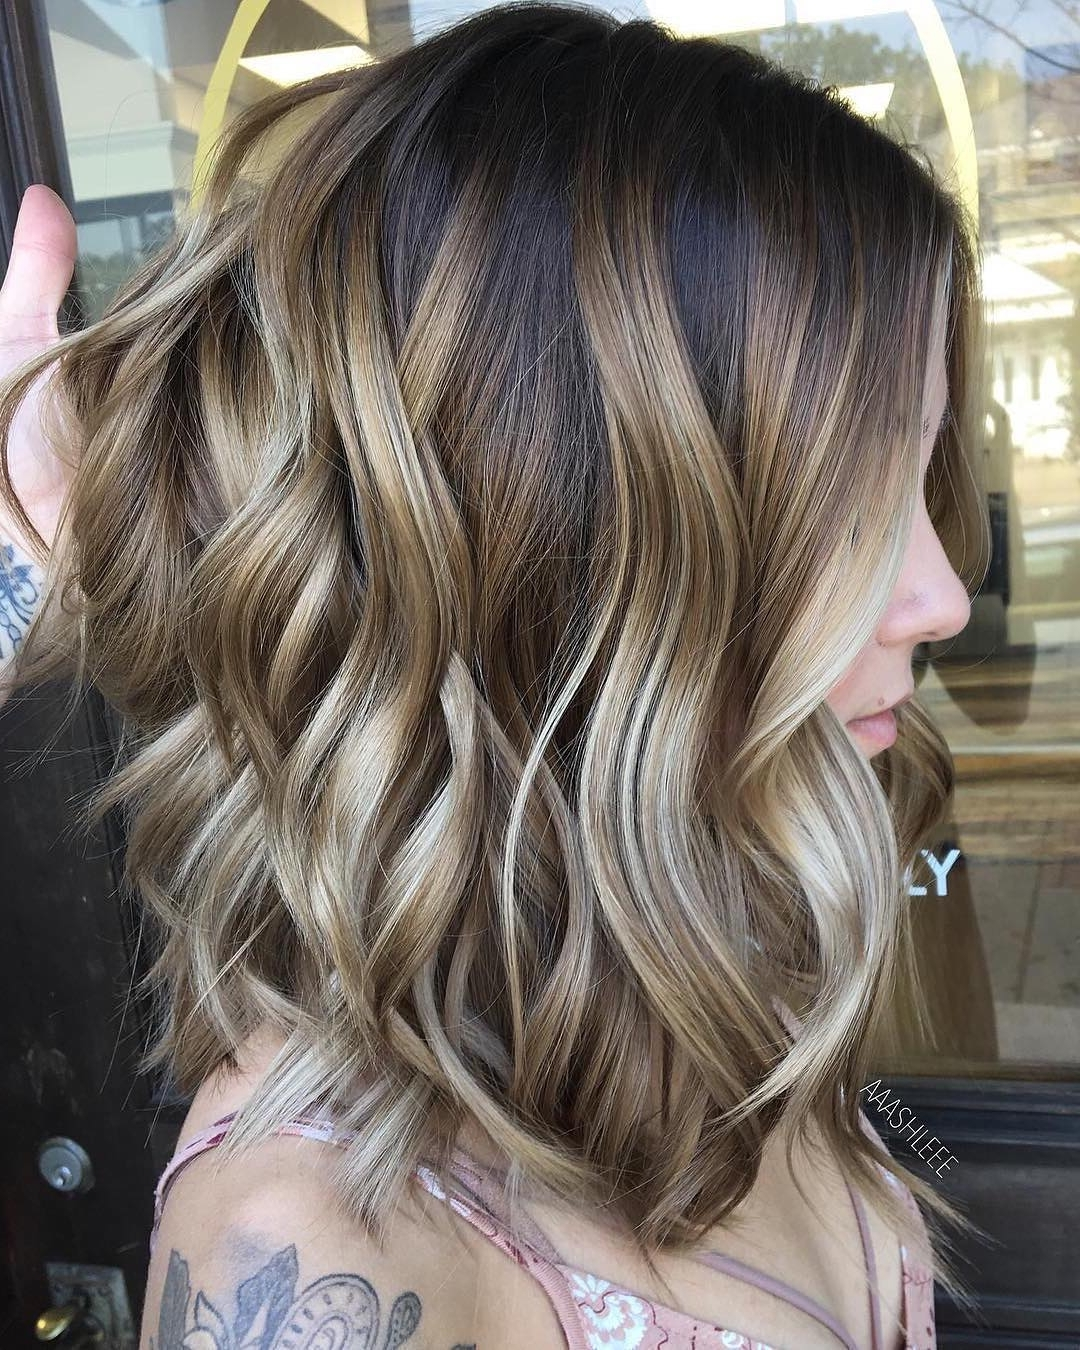 Trendy Shoulder Length Ombre Blonde Hairstyles Intended For 10 Ombre Balayage Hairstyles For Medium Length Hair, Hair Color  (View 17 of 20)